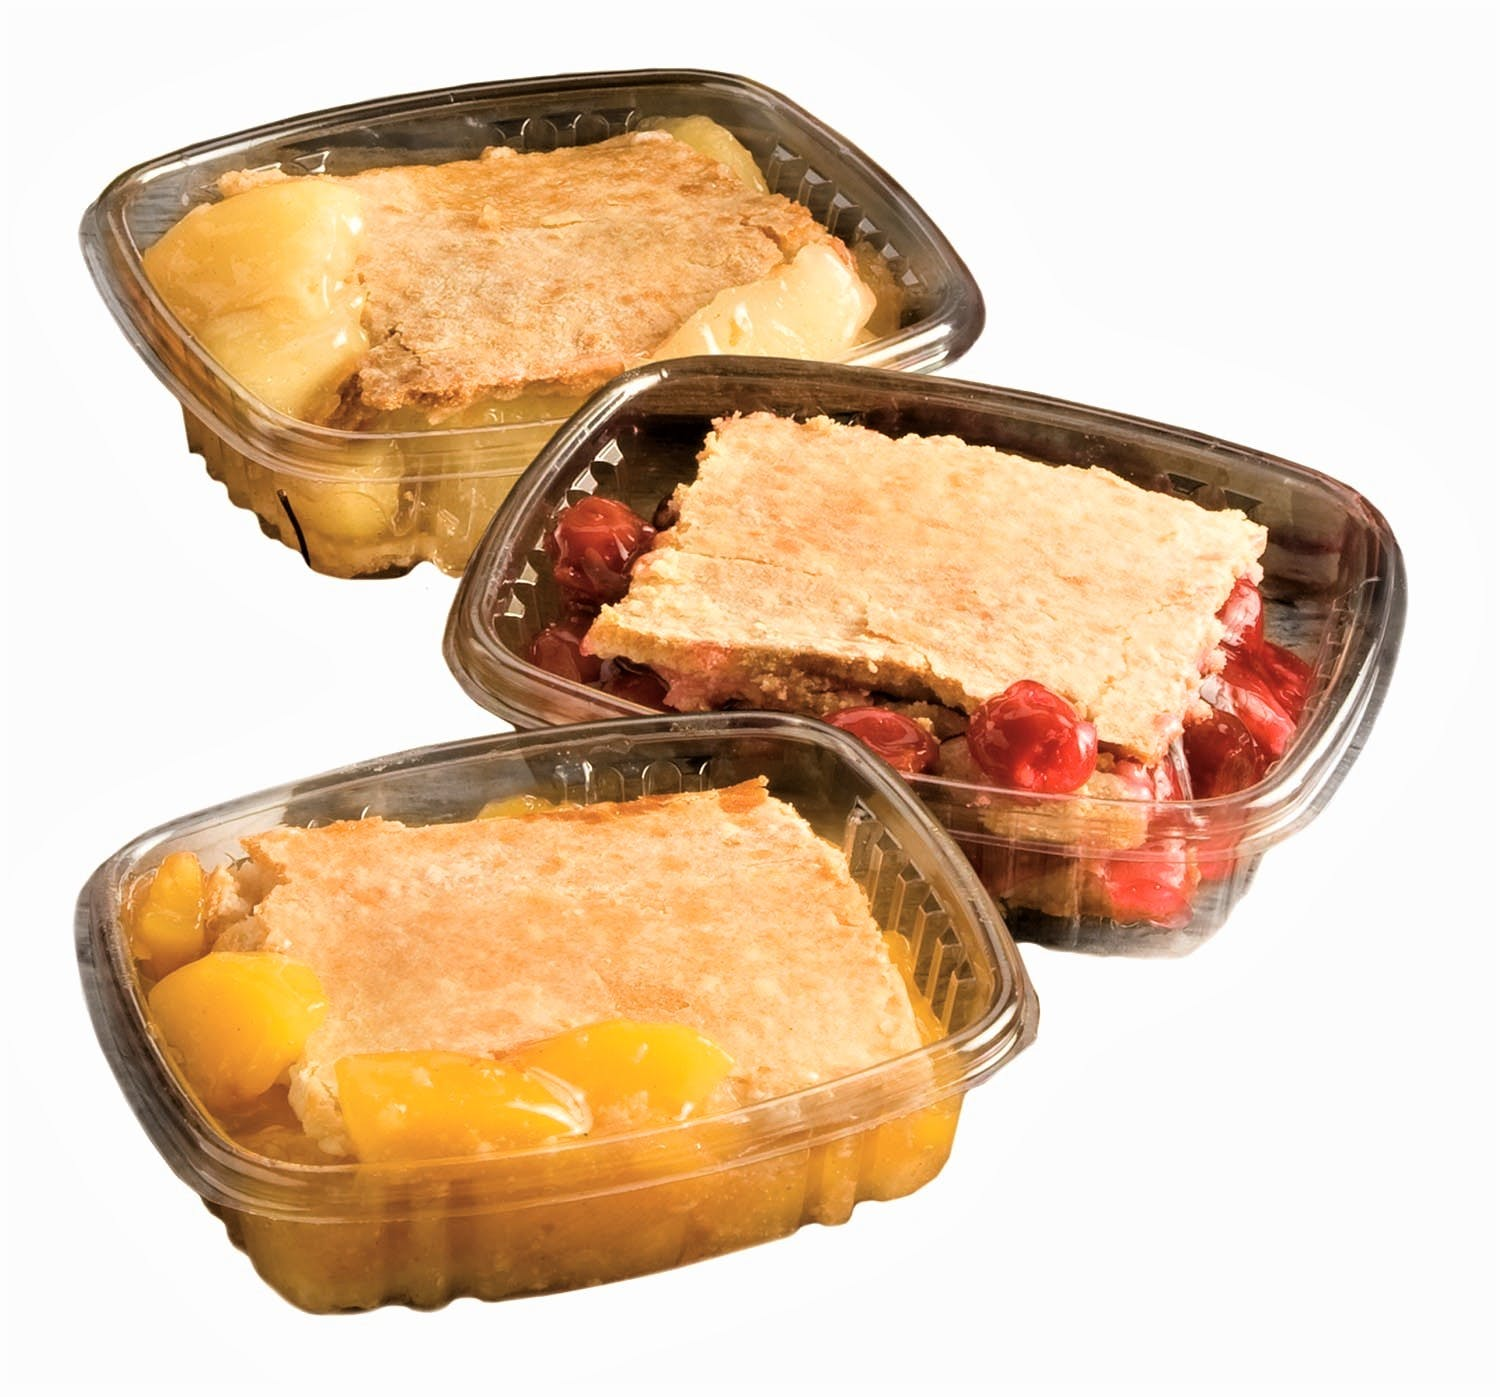 Fresh Baked Cobbler from Hog Wild Pit BBQ & Catering in Lawrence, KS